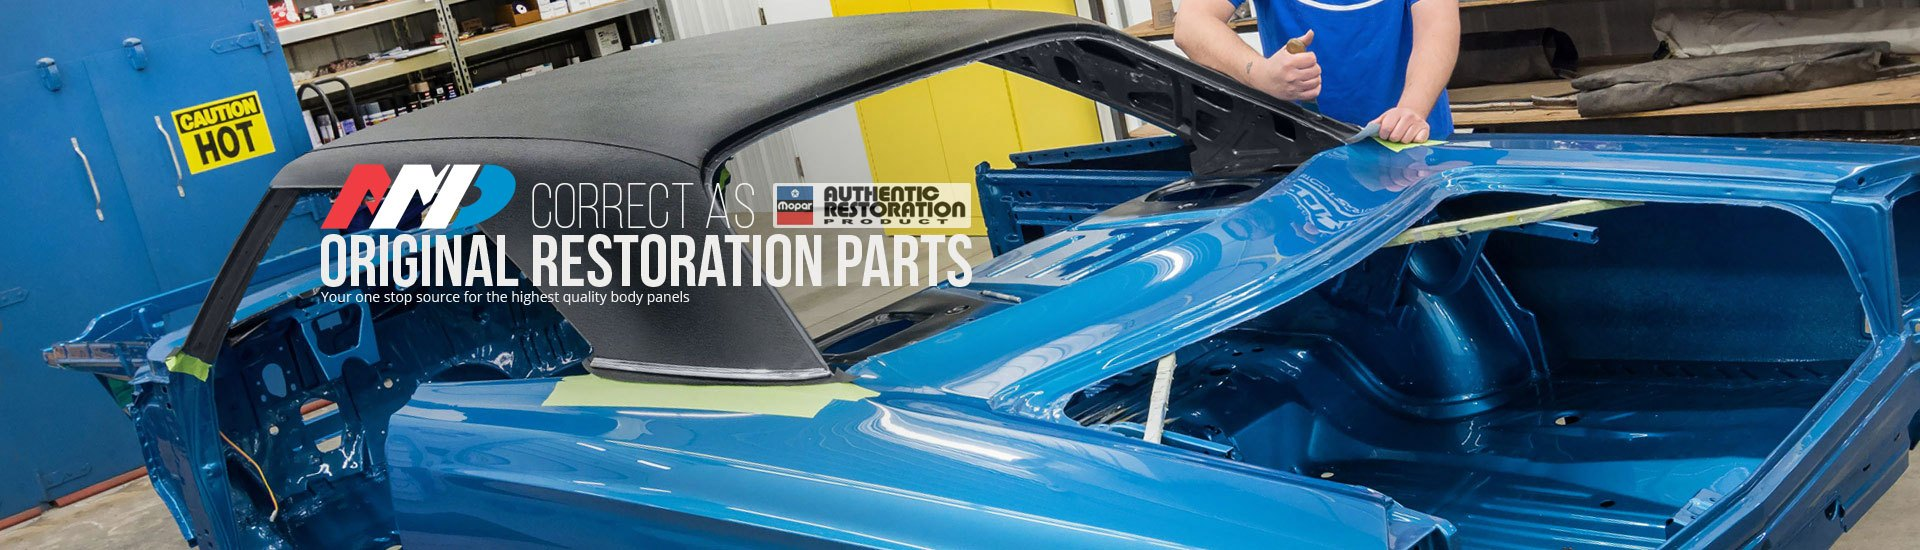 Auto Body Parts | Collision Repair, Restoration - CARiD.com